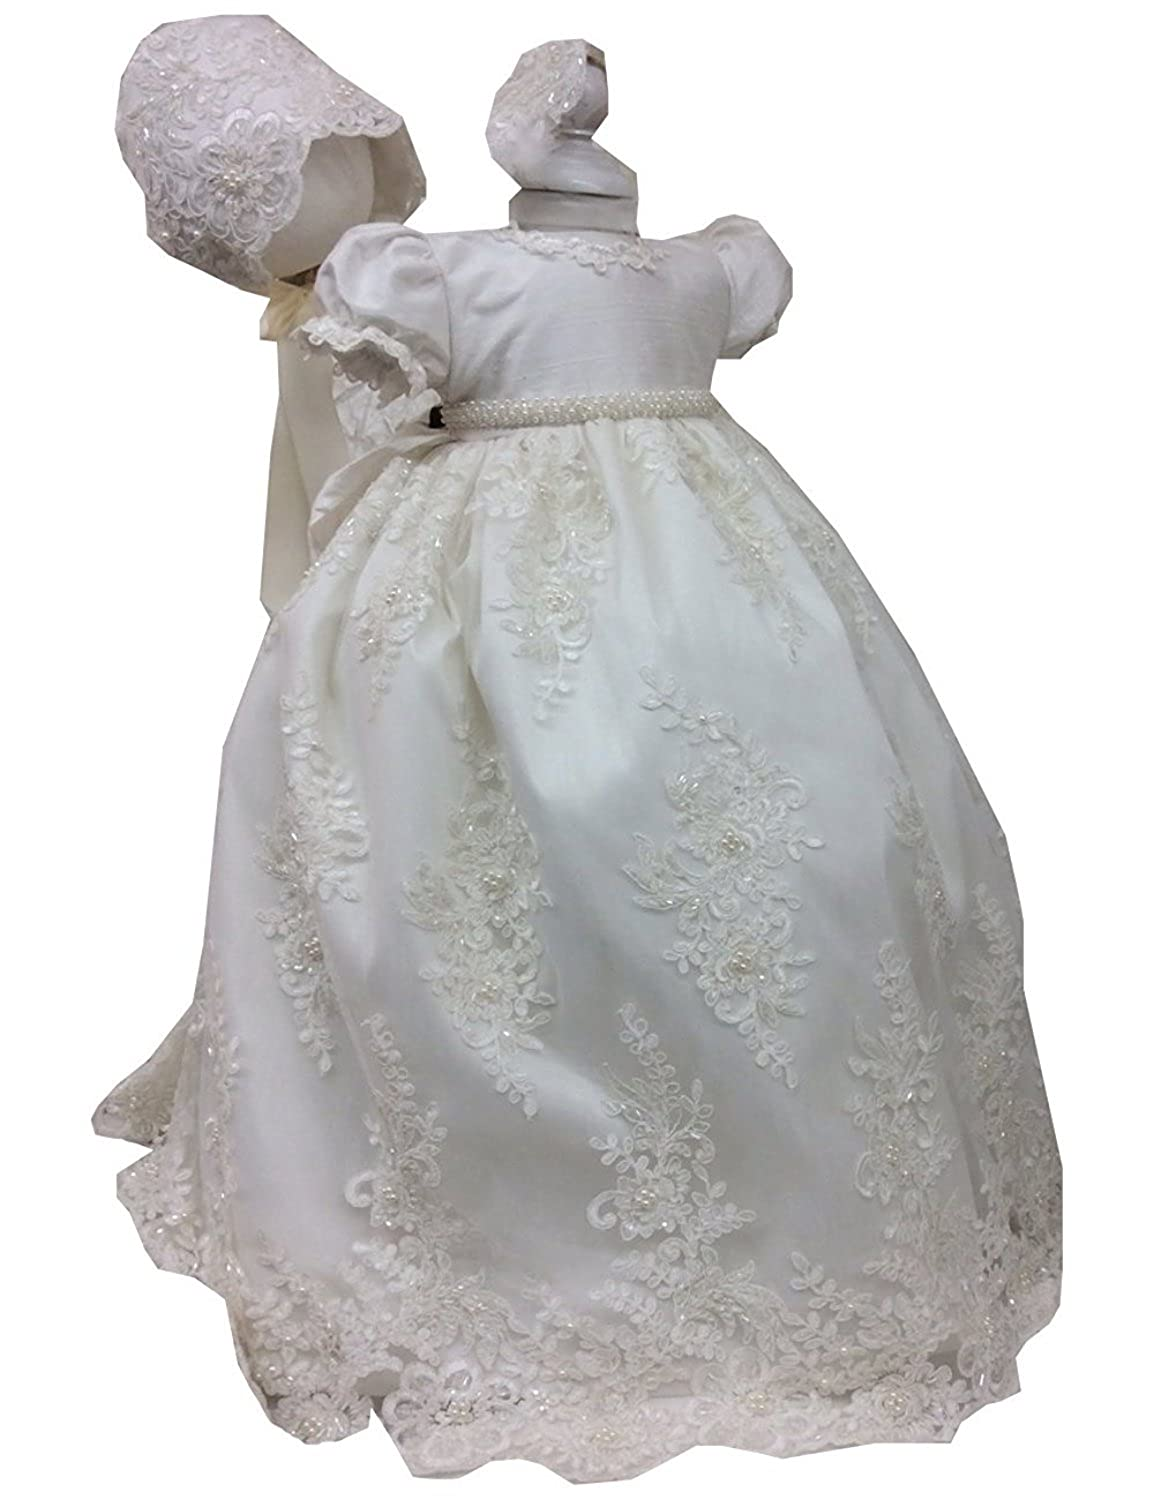 Amazon.com: SHENLINQIJ White Lace Christening Gowns Baby Baptism ...